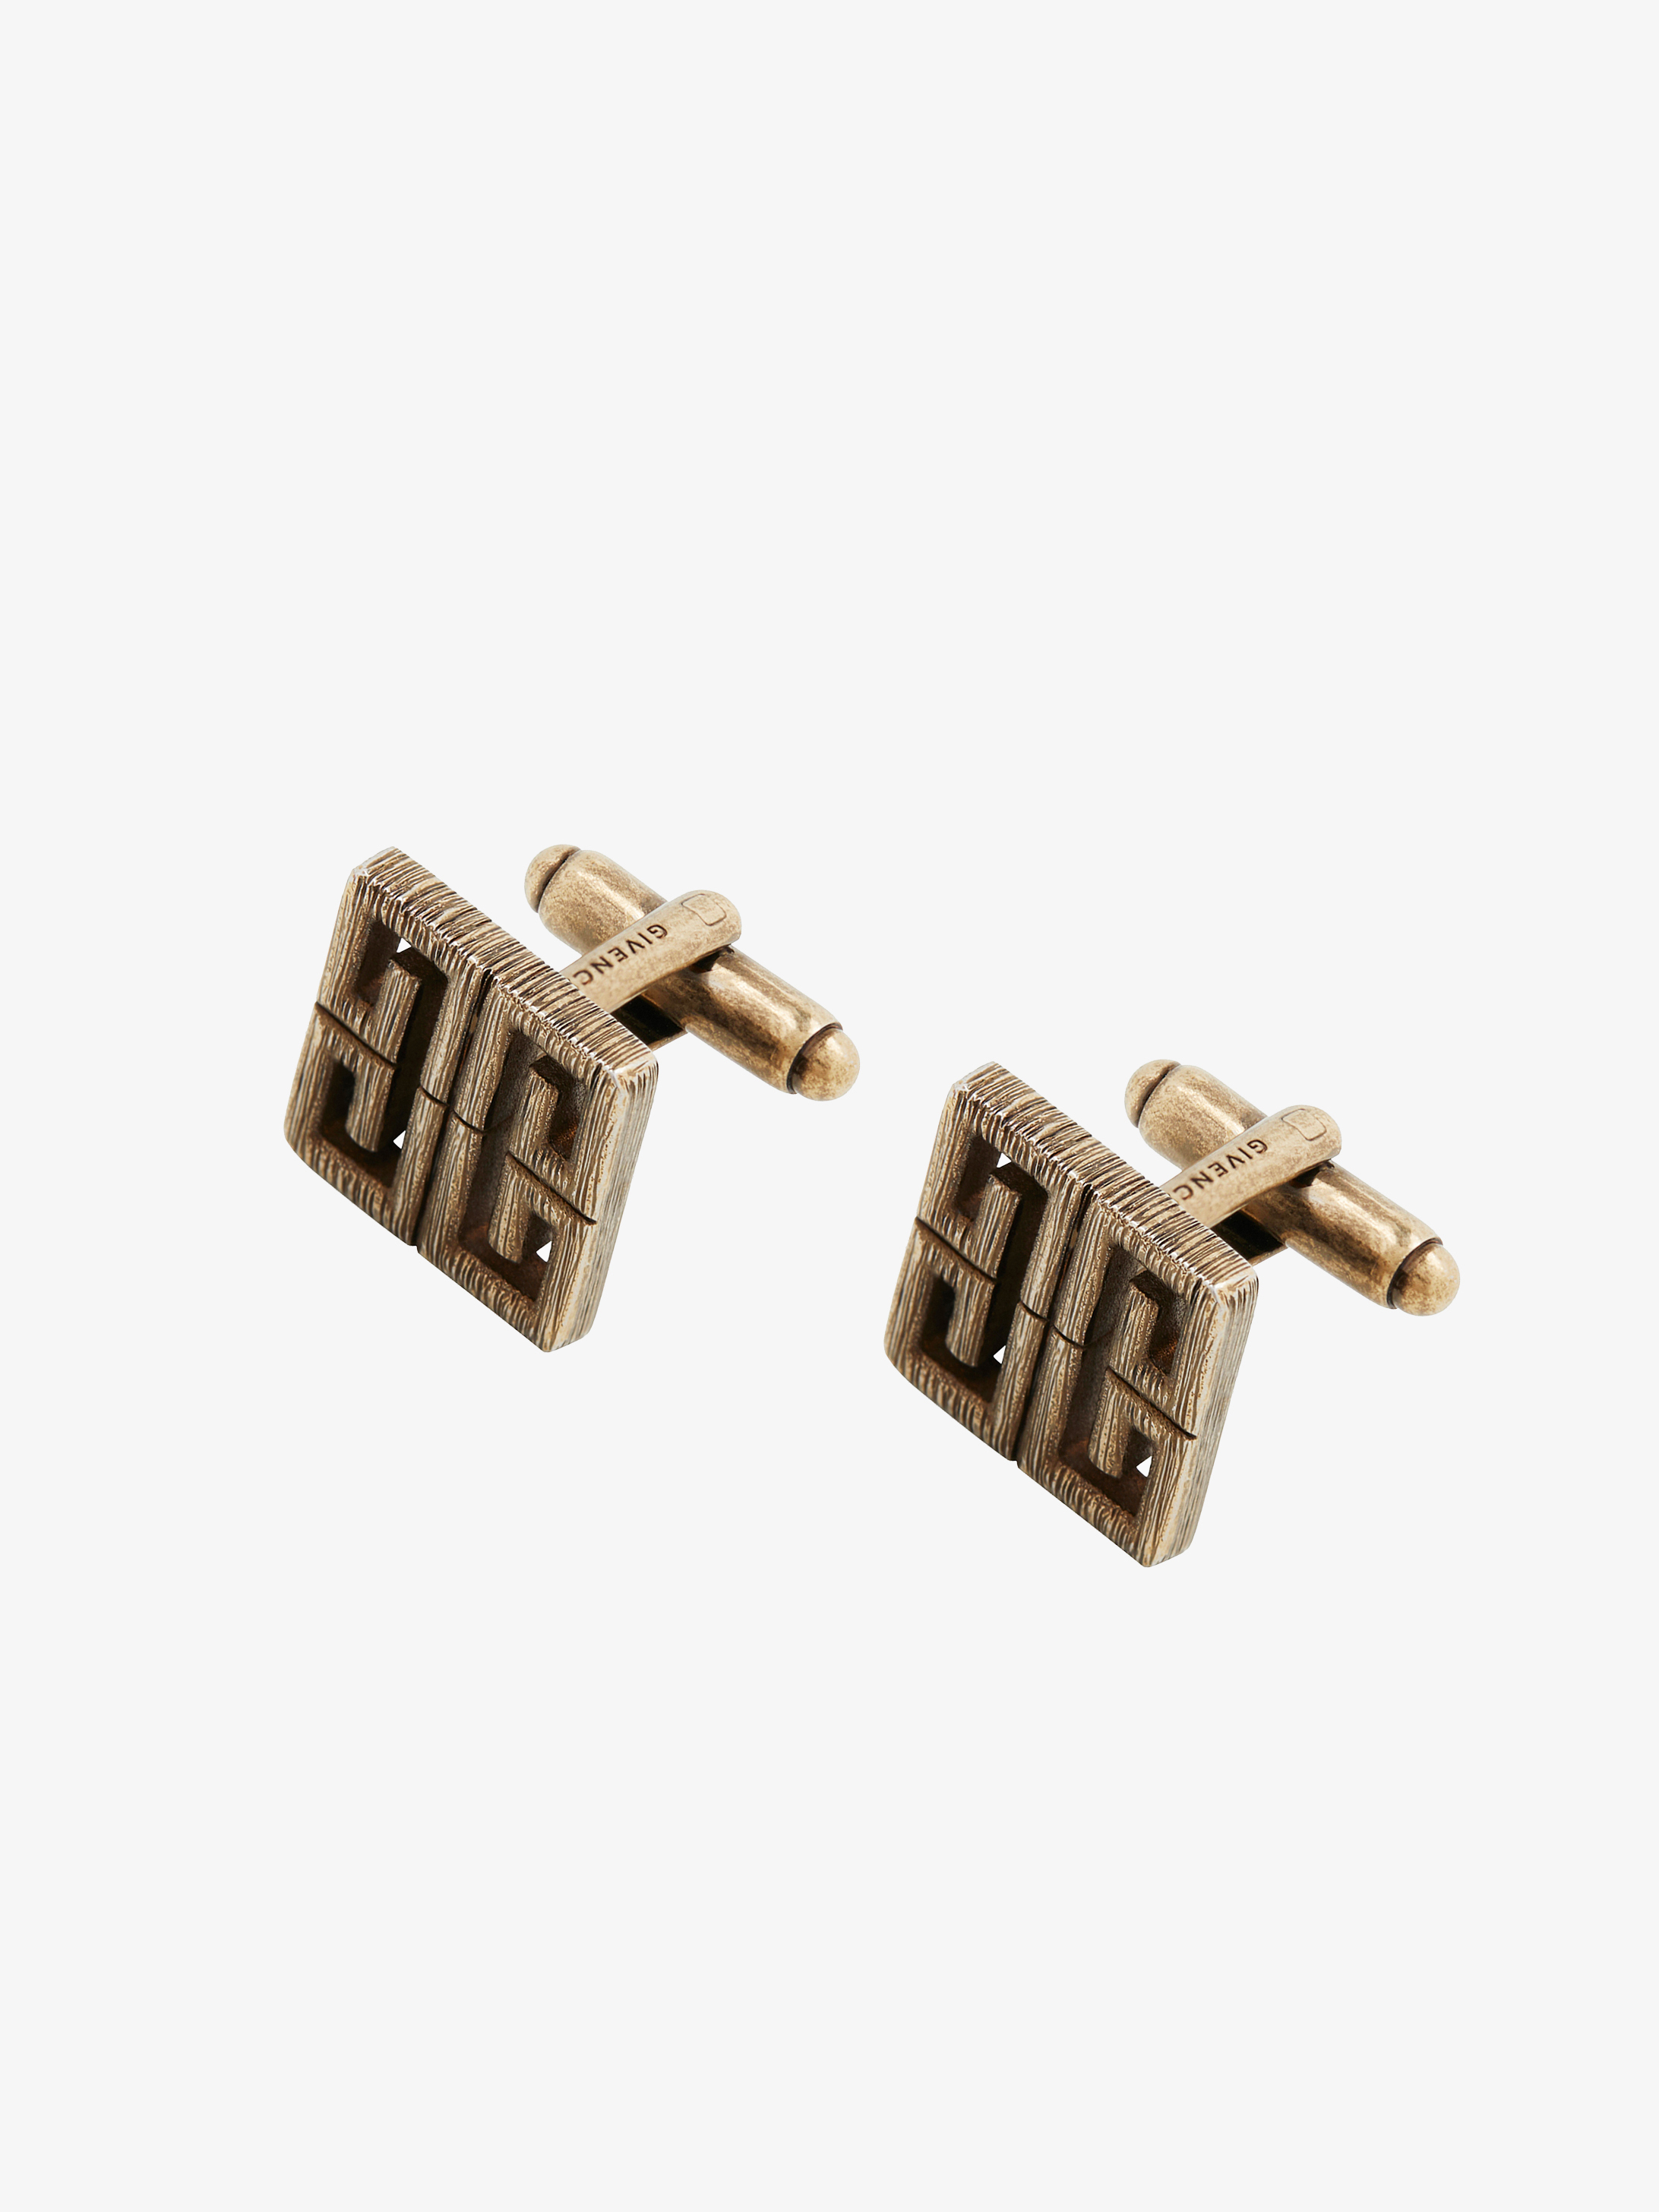 4G brass cufflinks